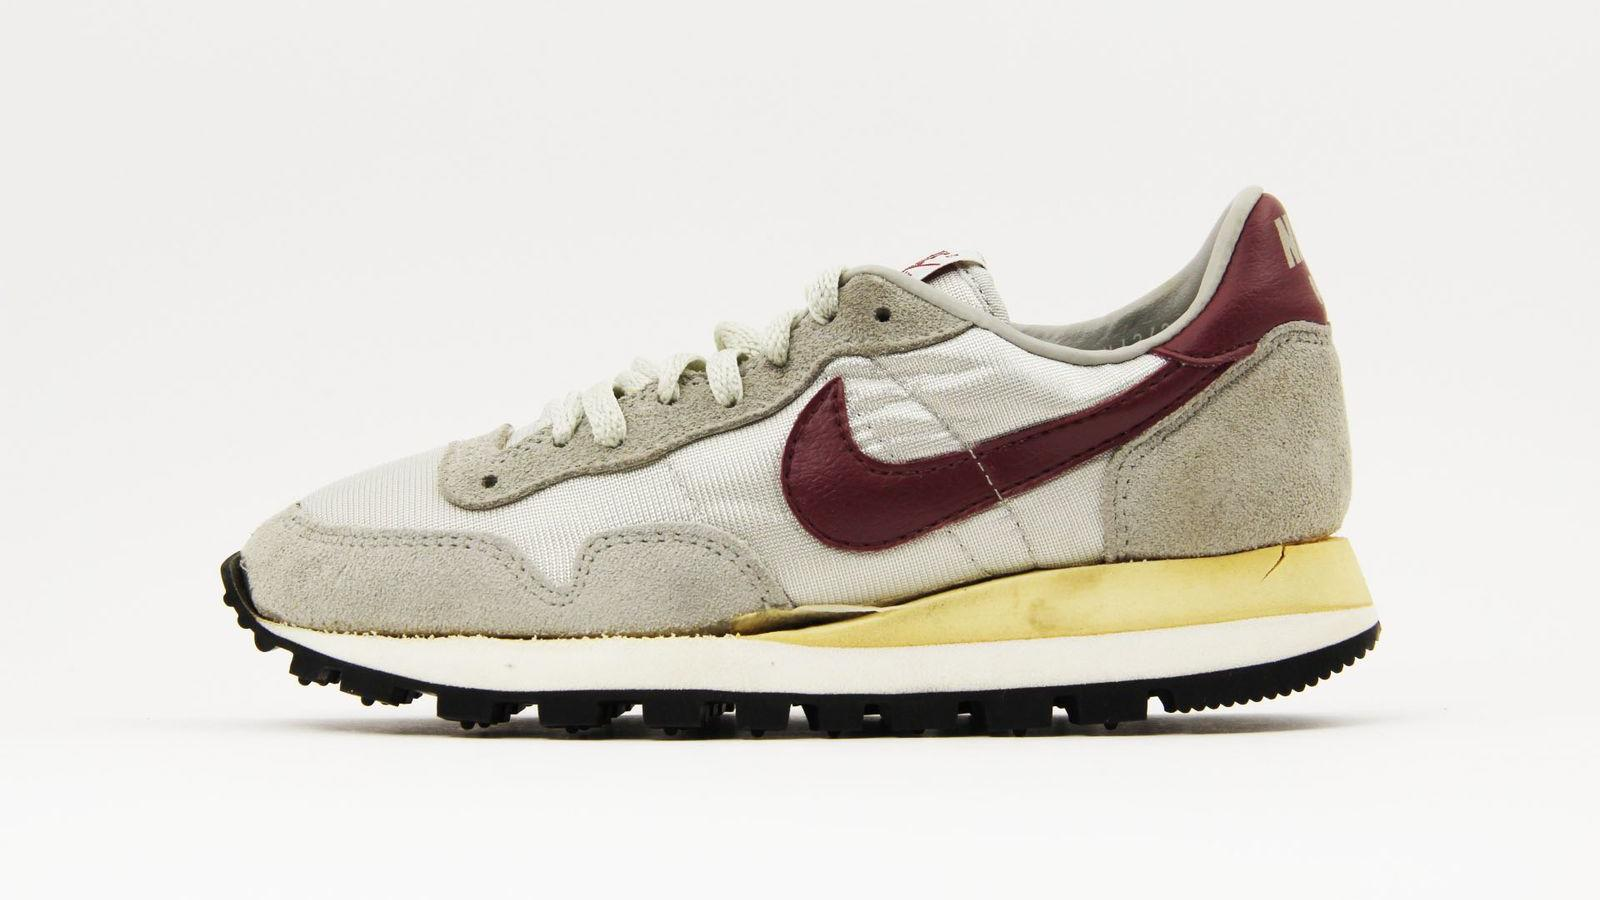 a8186c3313 10 Things You Didn't Know About the Nike Pegasus - Nike News